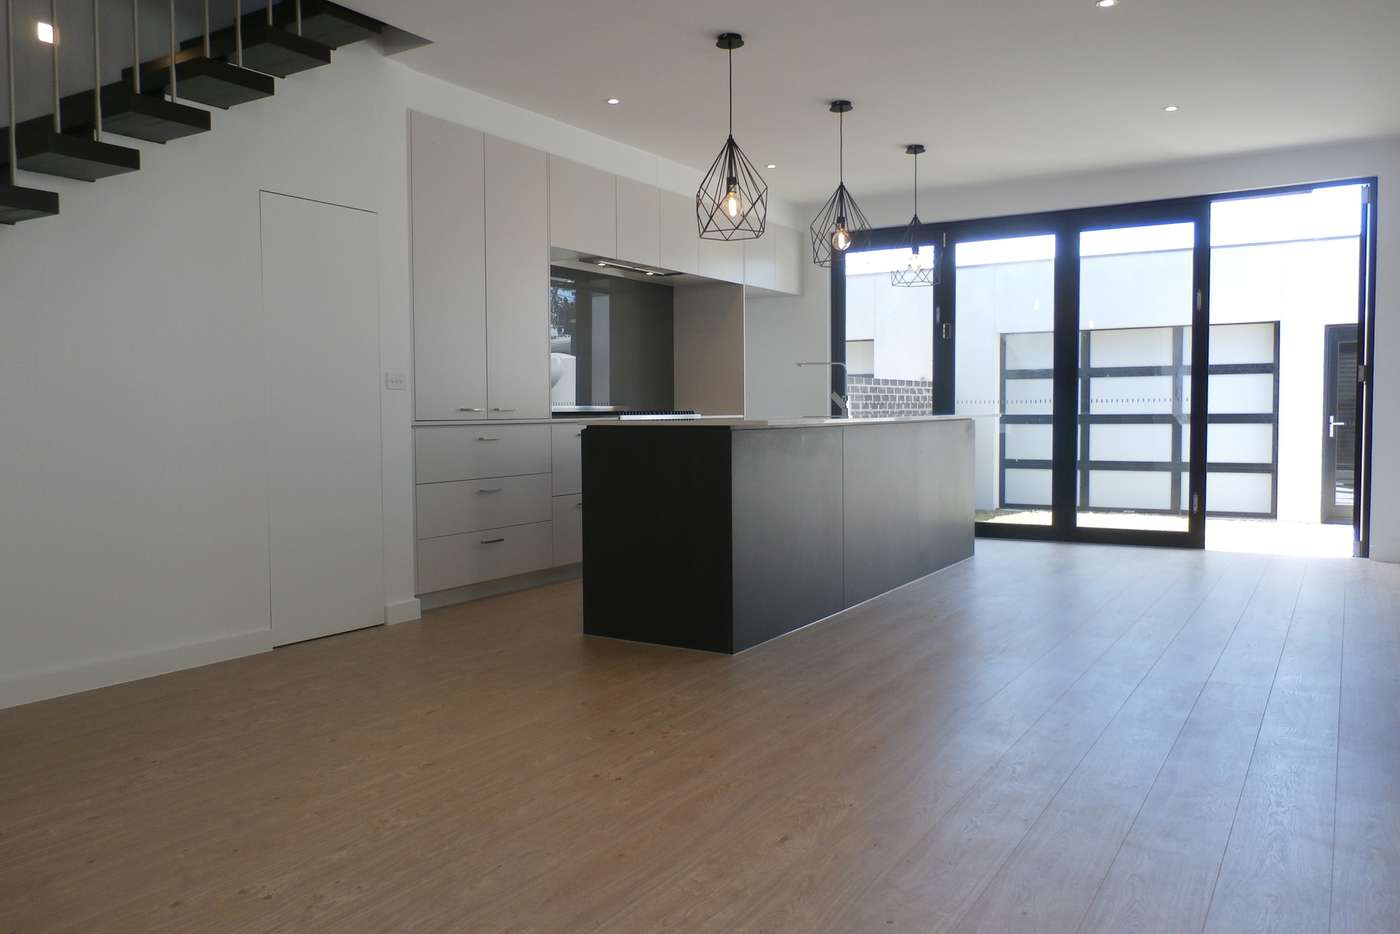 Sixth view of Homely townhouse listing, 4 Sturrock Street, Brunswick East VIC 3057